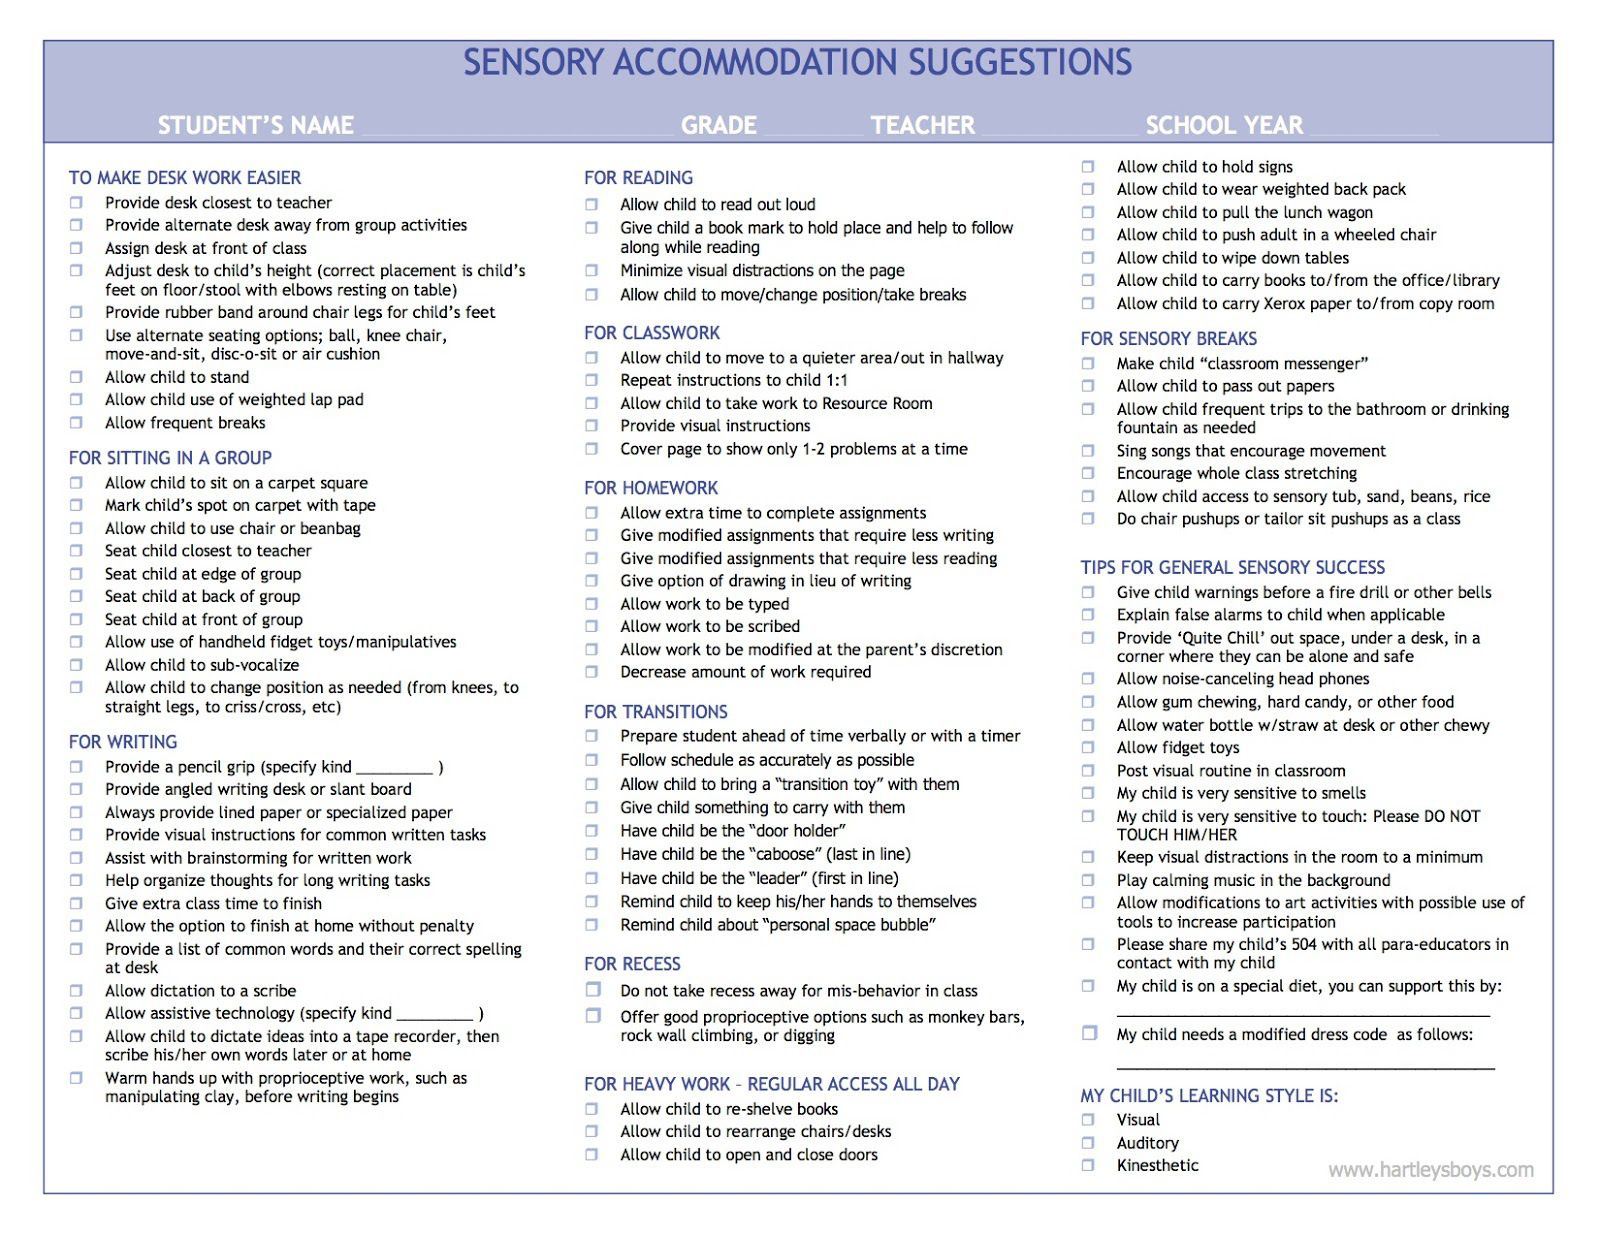 500+ Practical IEP/504 Accommodation and Strategy Ideas